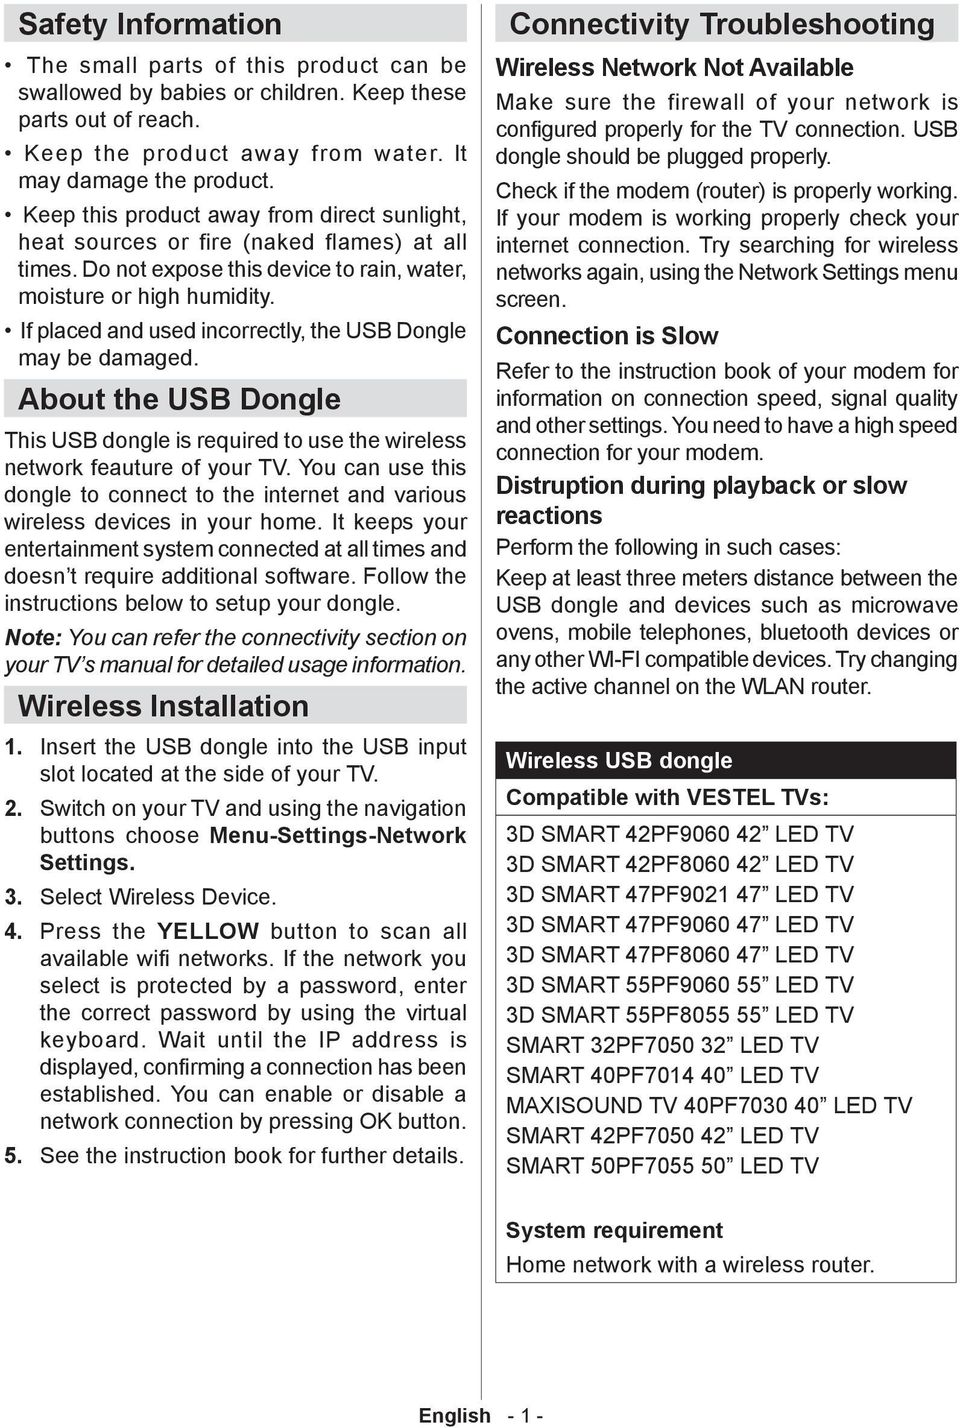 If placed and used incorrectly, the USB Dongle may be damaged. About the USB Dongle This USB dongle is required to use the wireless network feauture of your TV.